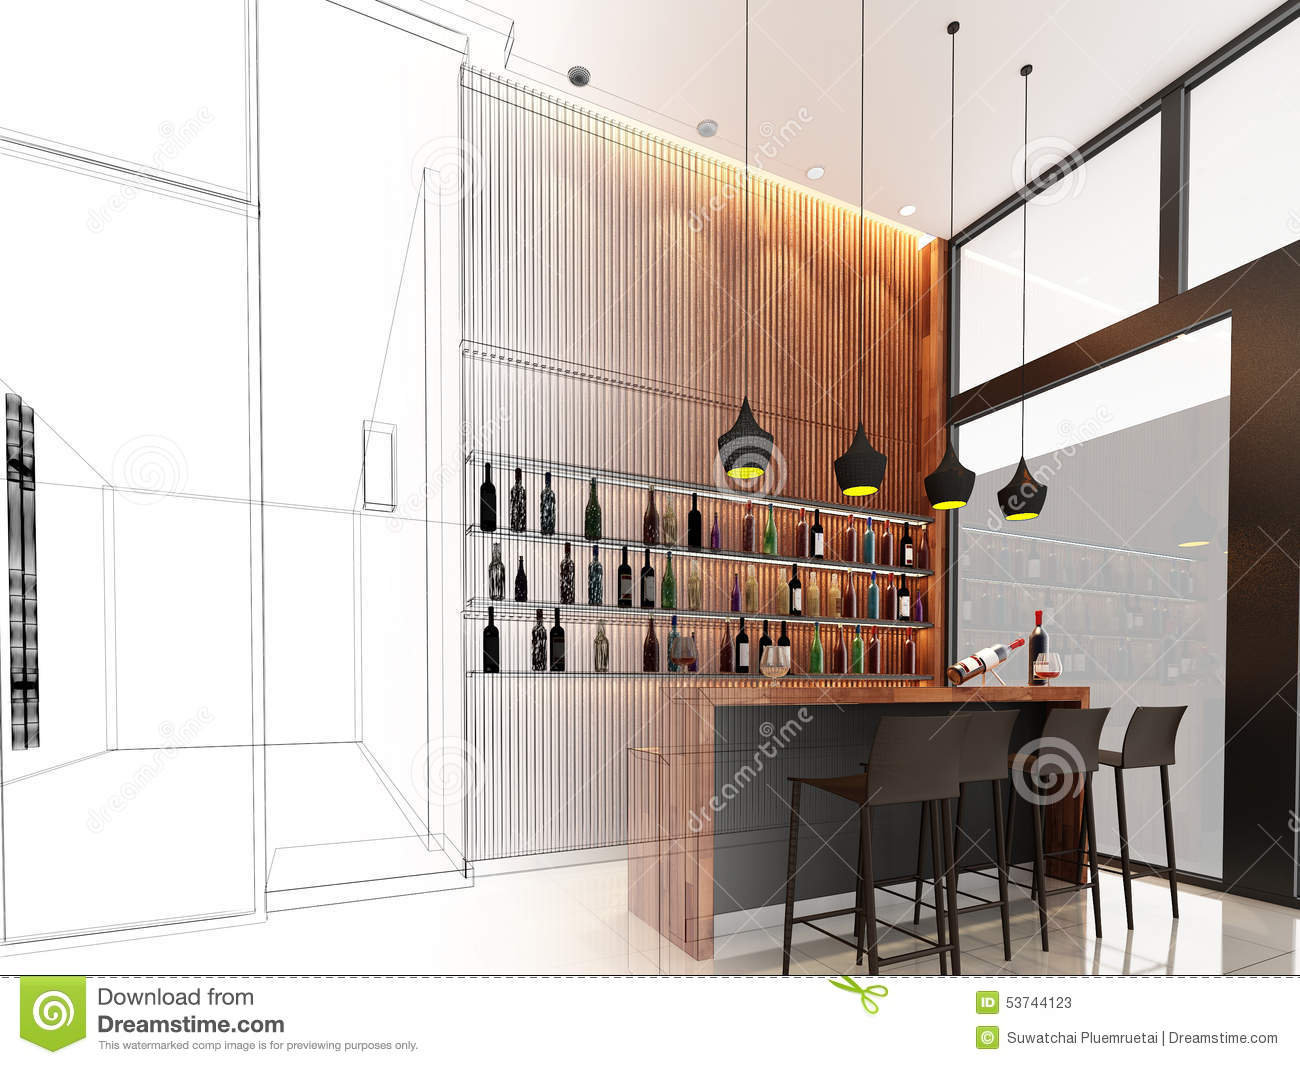 Sketch Design Of Counter Bar Stock Image - Image of engineering ...